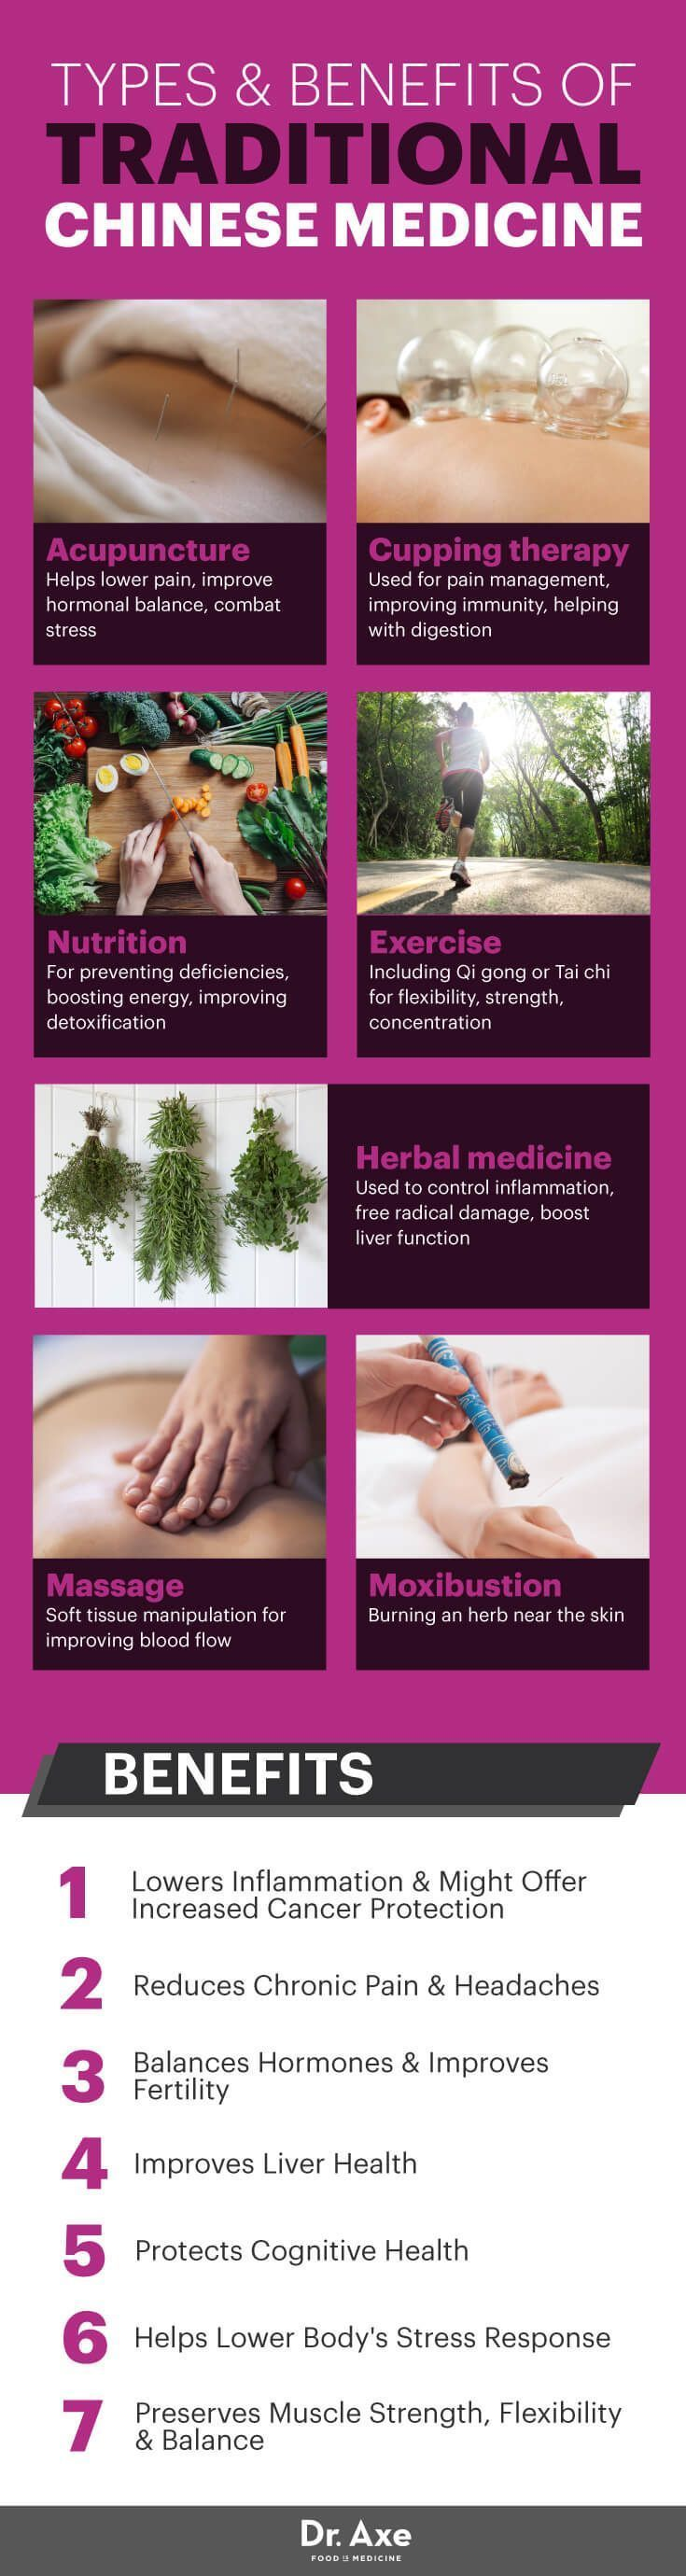 Traditional Chinese Medicine types and benefits - Dr. Axe #health #holistic #natural